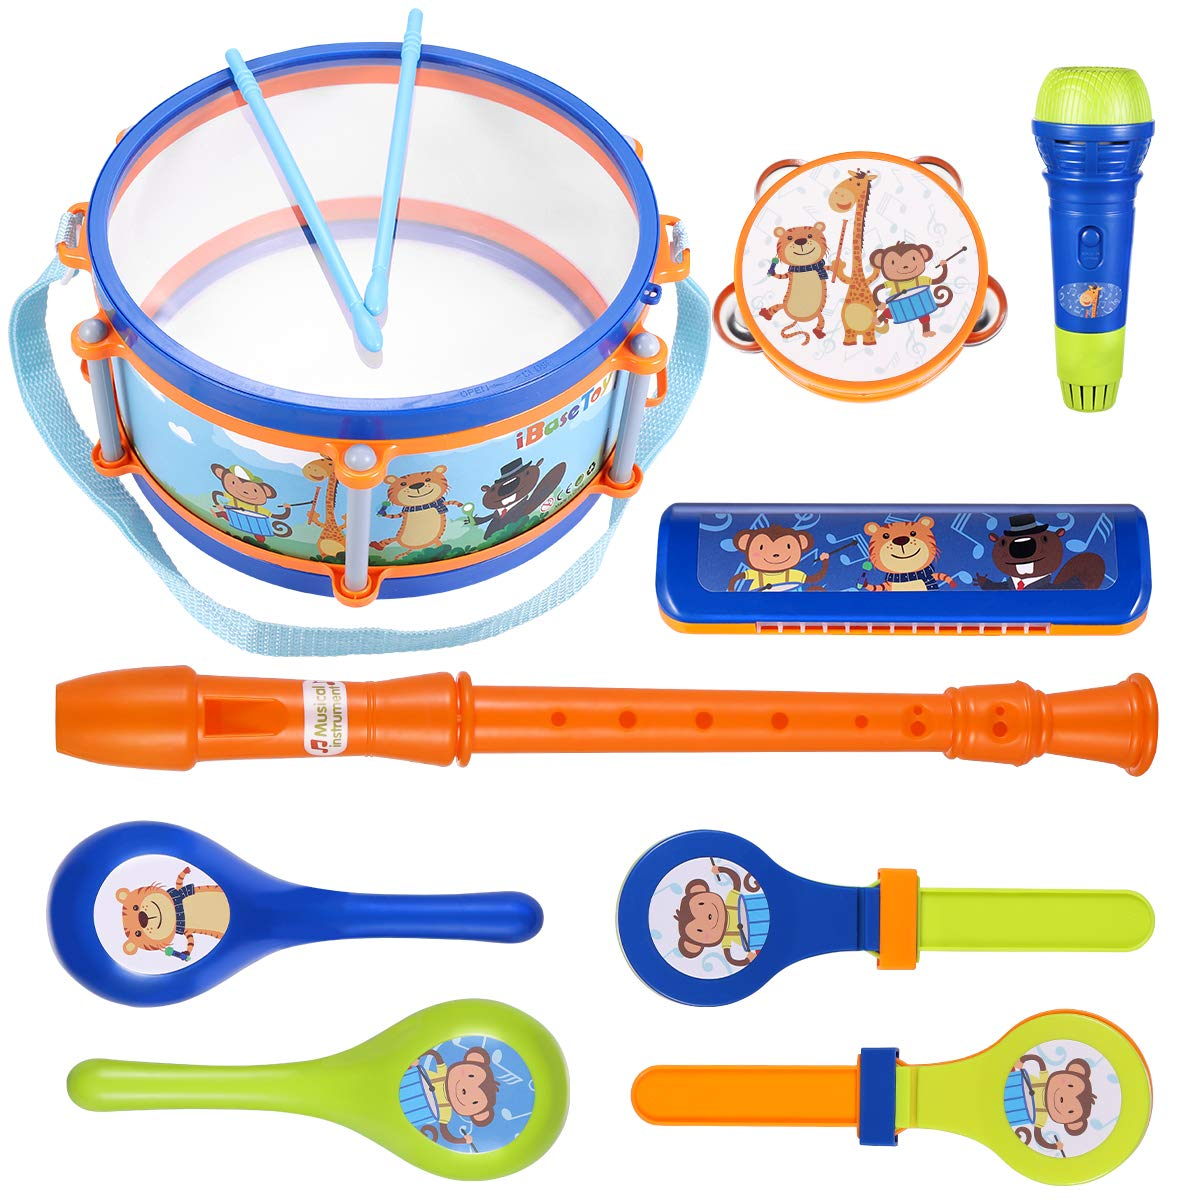 iBaseToy Instruments Percussion Tambourine Educational